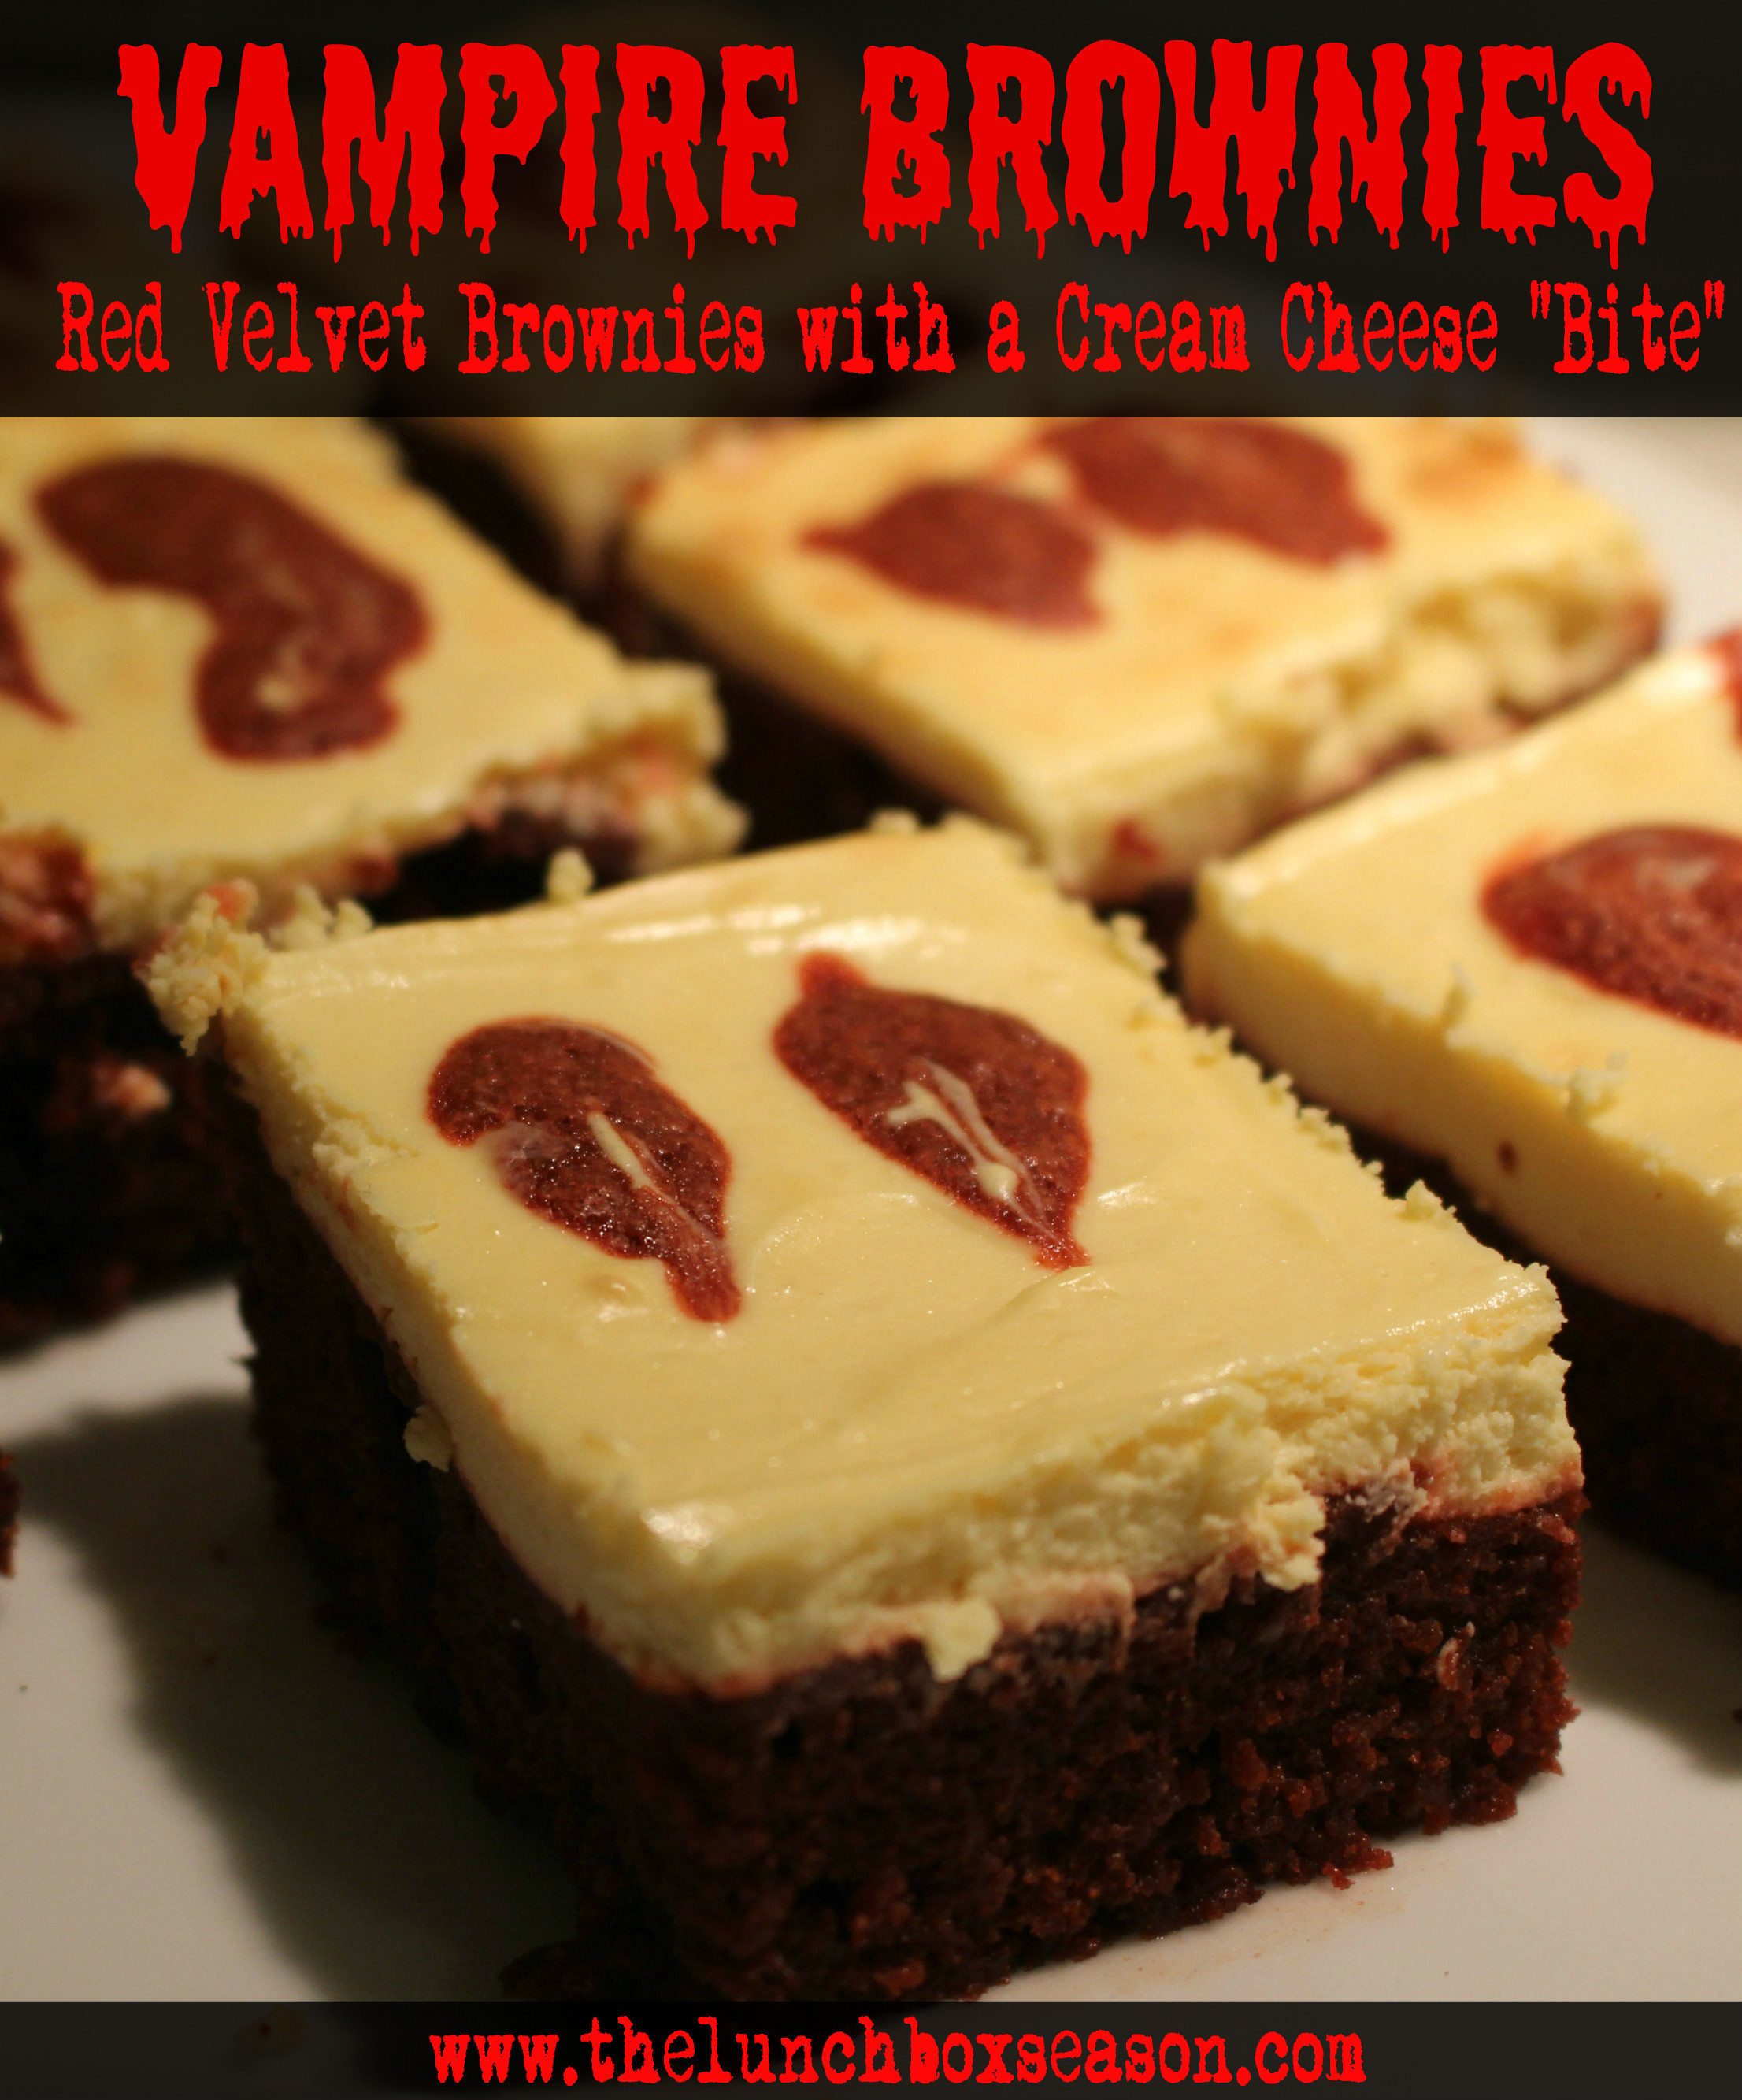 Vampire Brownies Red Velvet Brownies with a Cream Cheese Bite